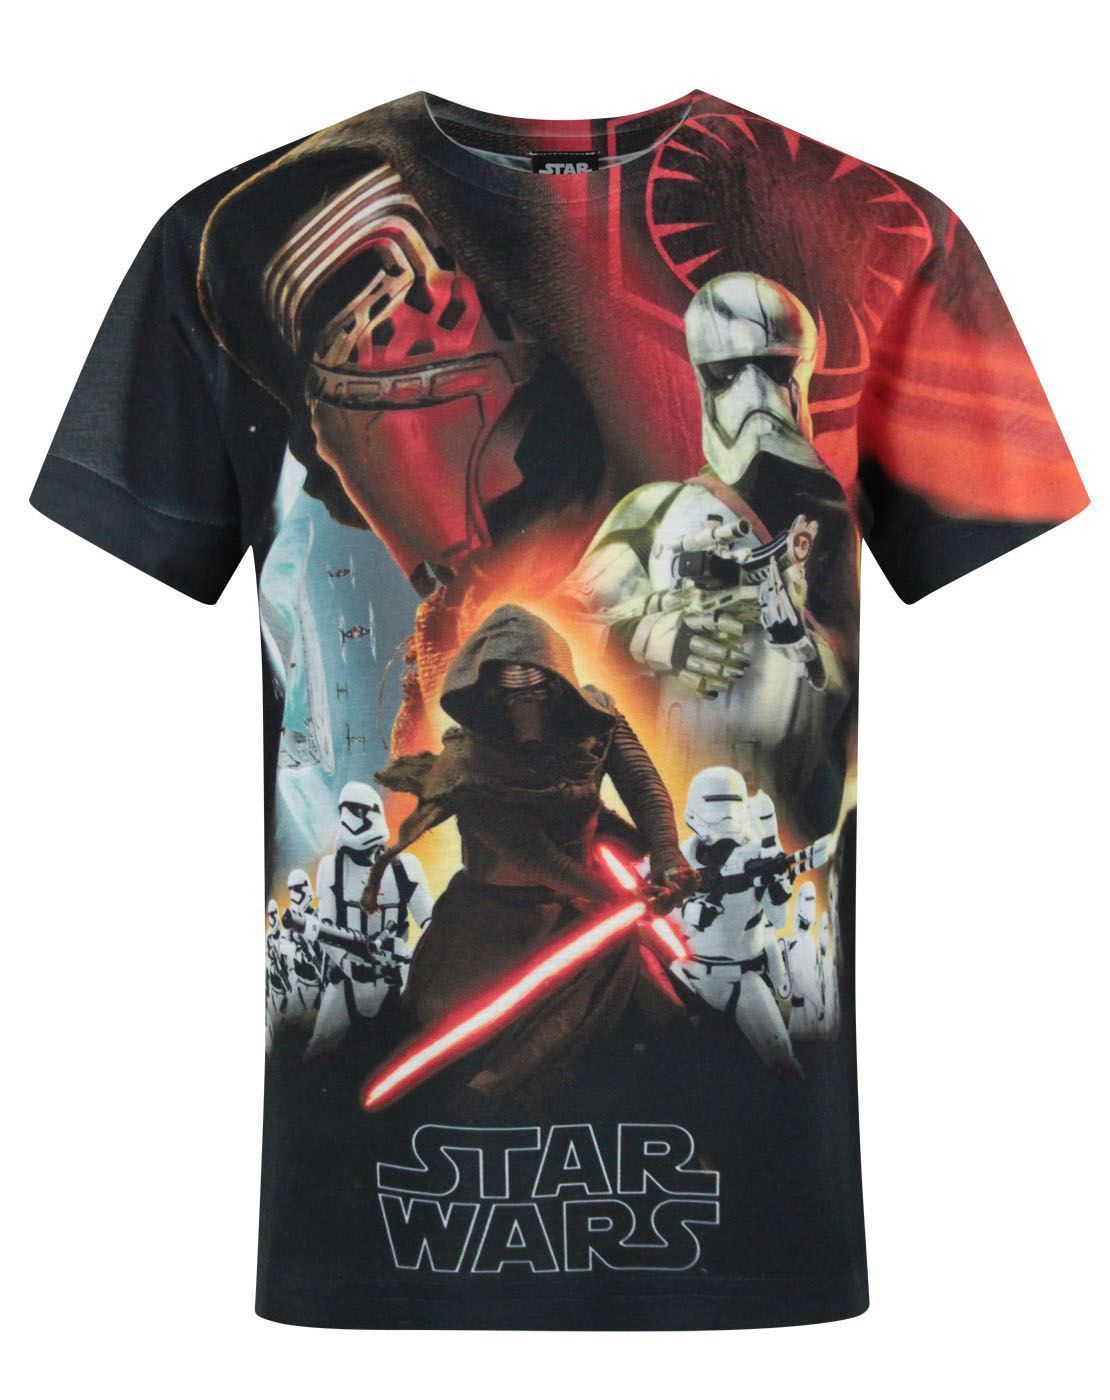 Star Wars Force Awakens First Order Sublimation Boy's T-Shirt